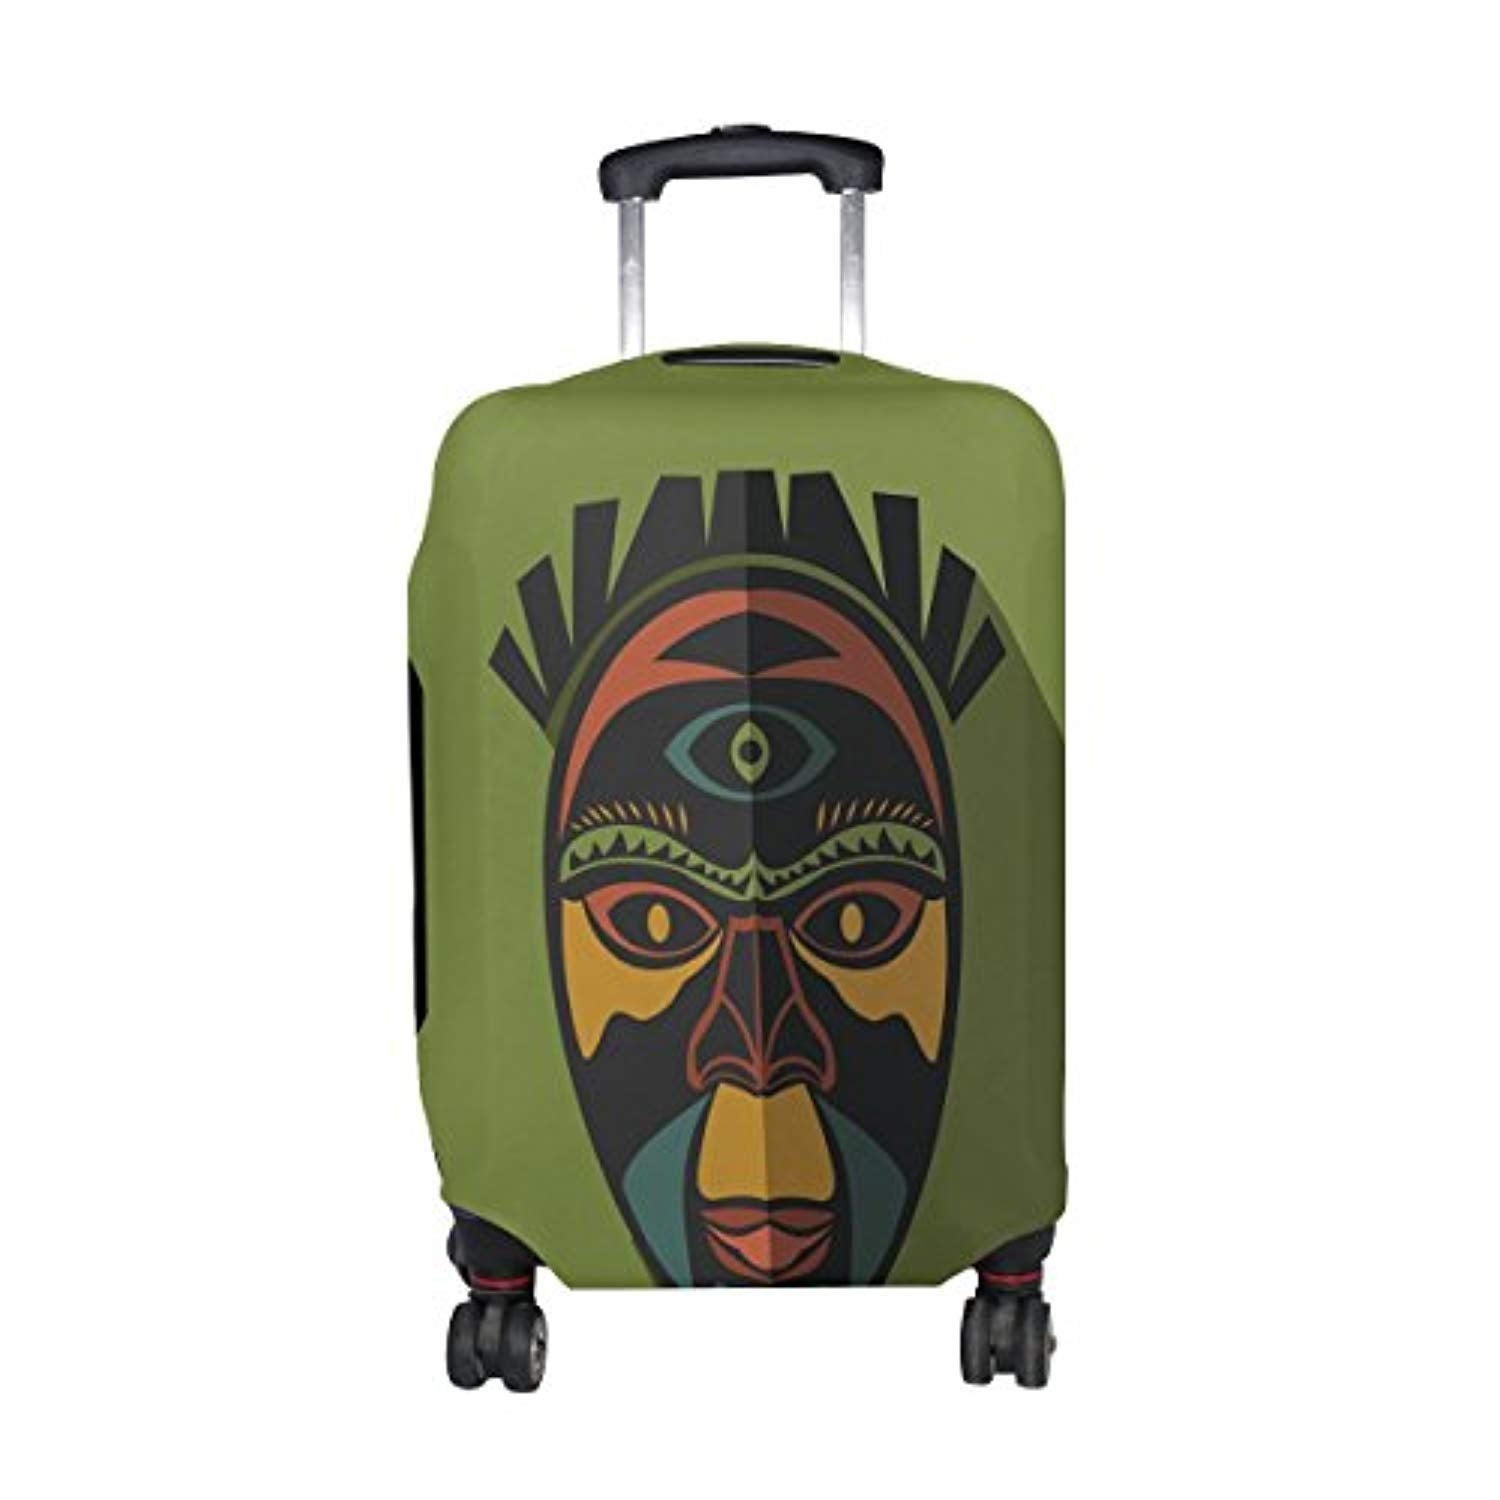 African Art Tribal Print Travel Luggage Protector Baggage Suitcase Cover Fits 18-20 Inch Luggage